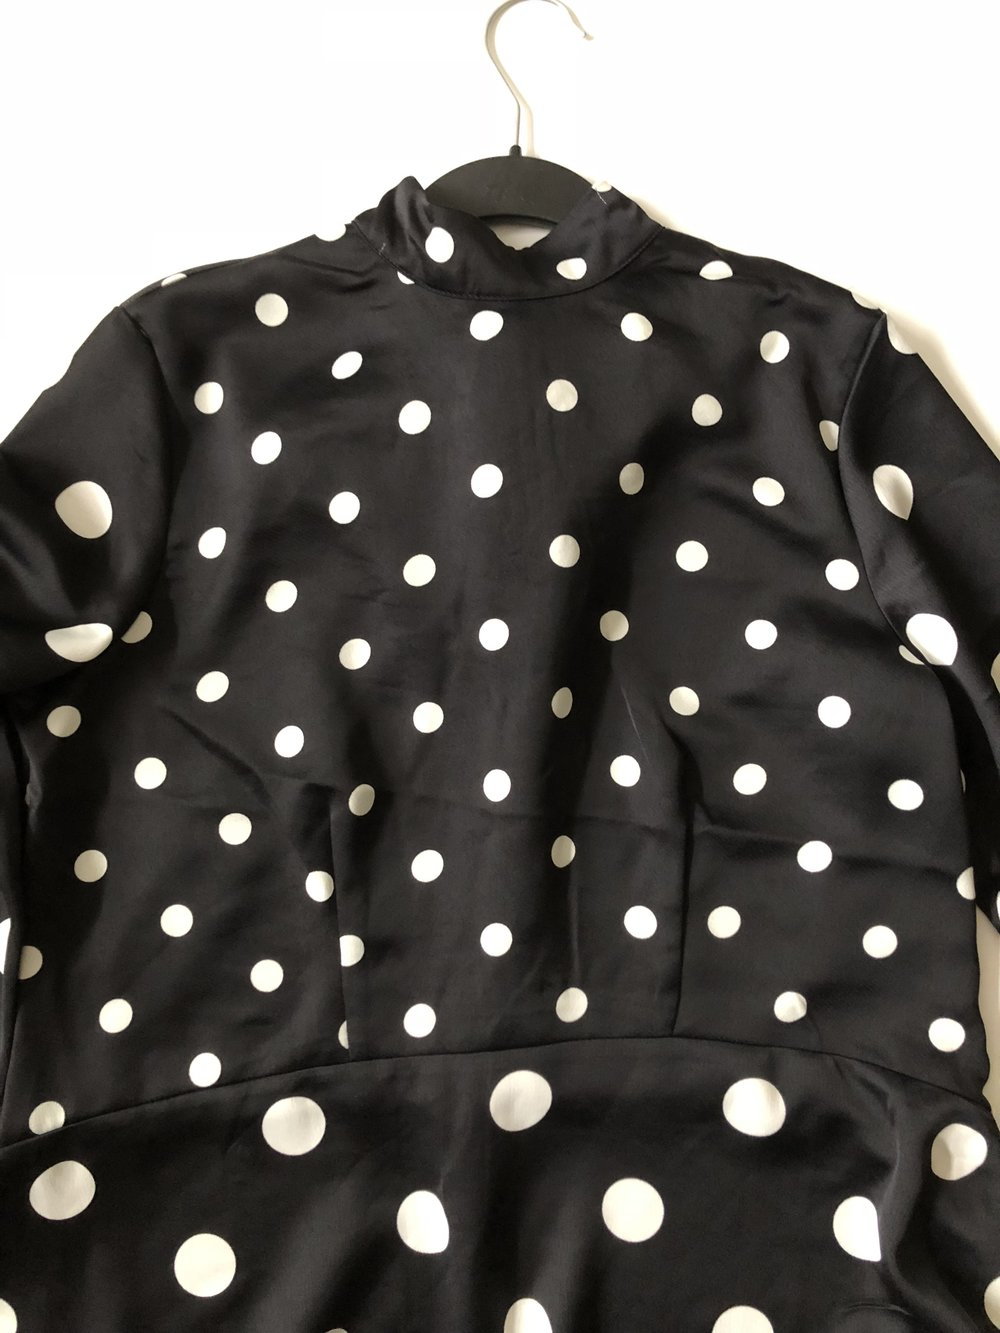 H&M polka dot silk blouse $13.00 (front), size medium.